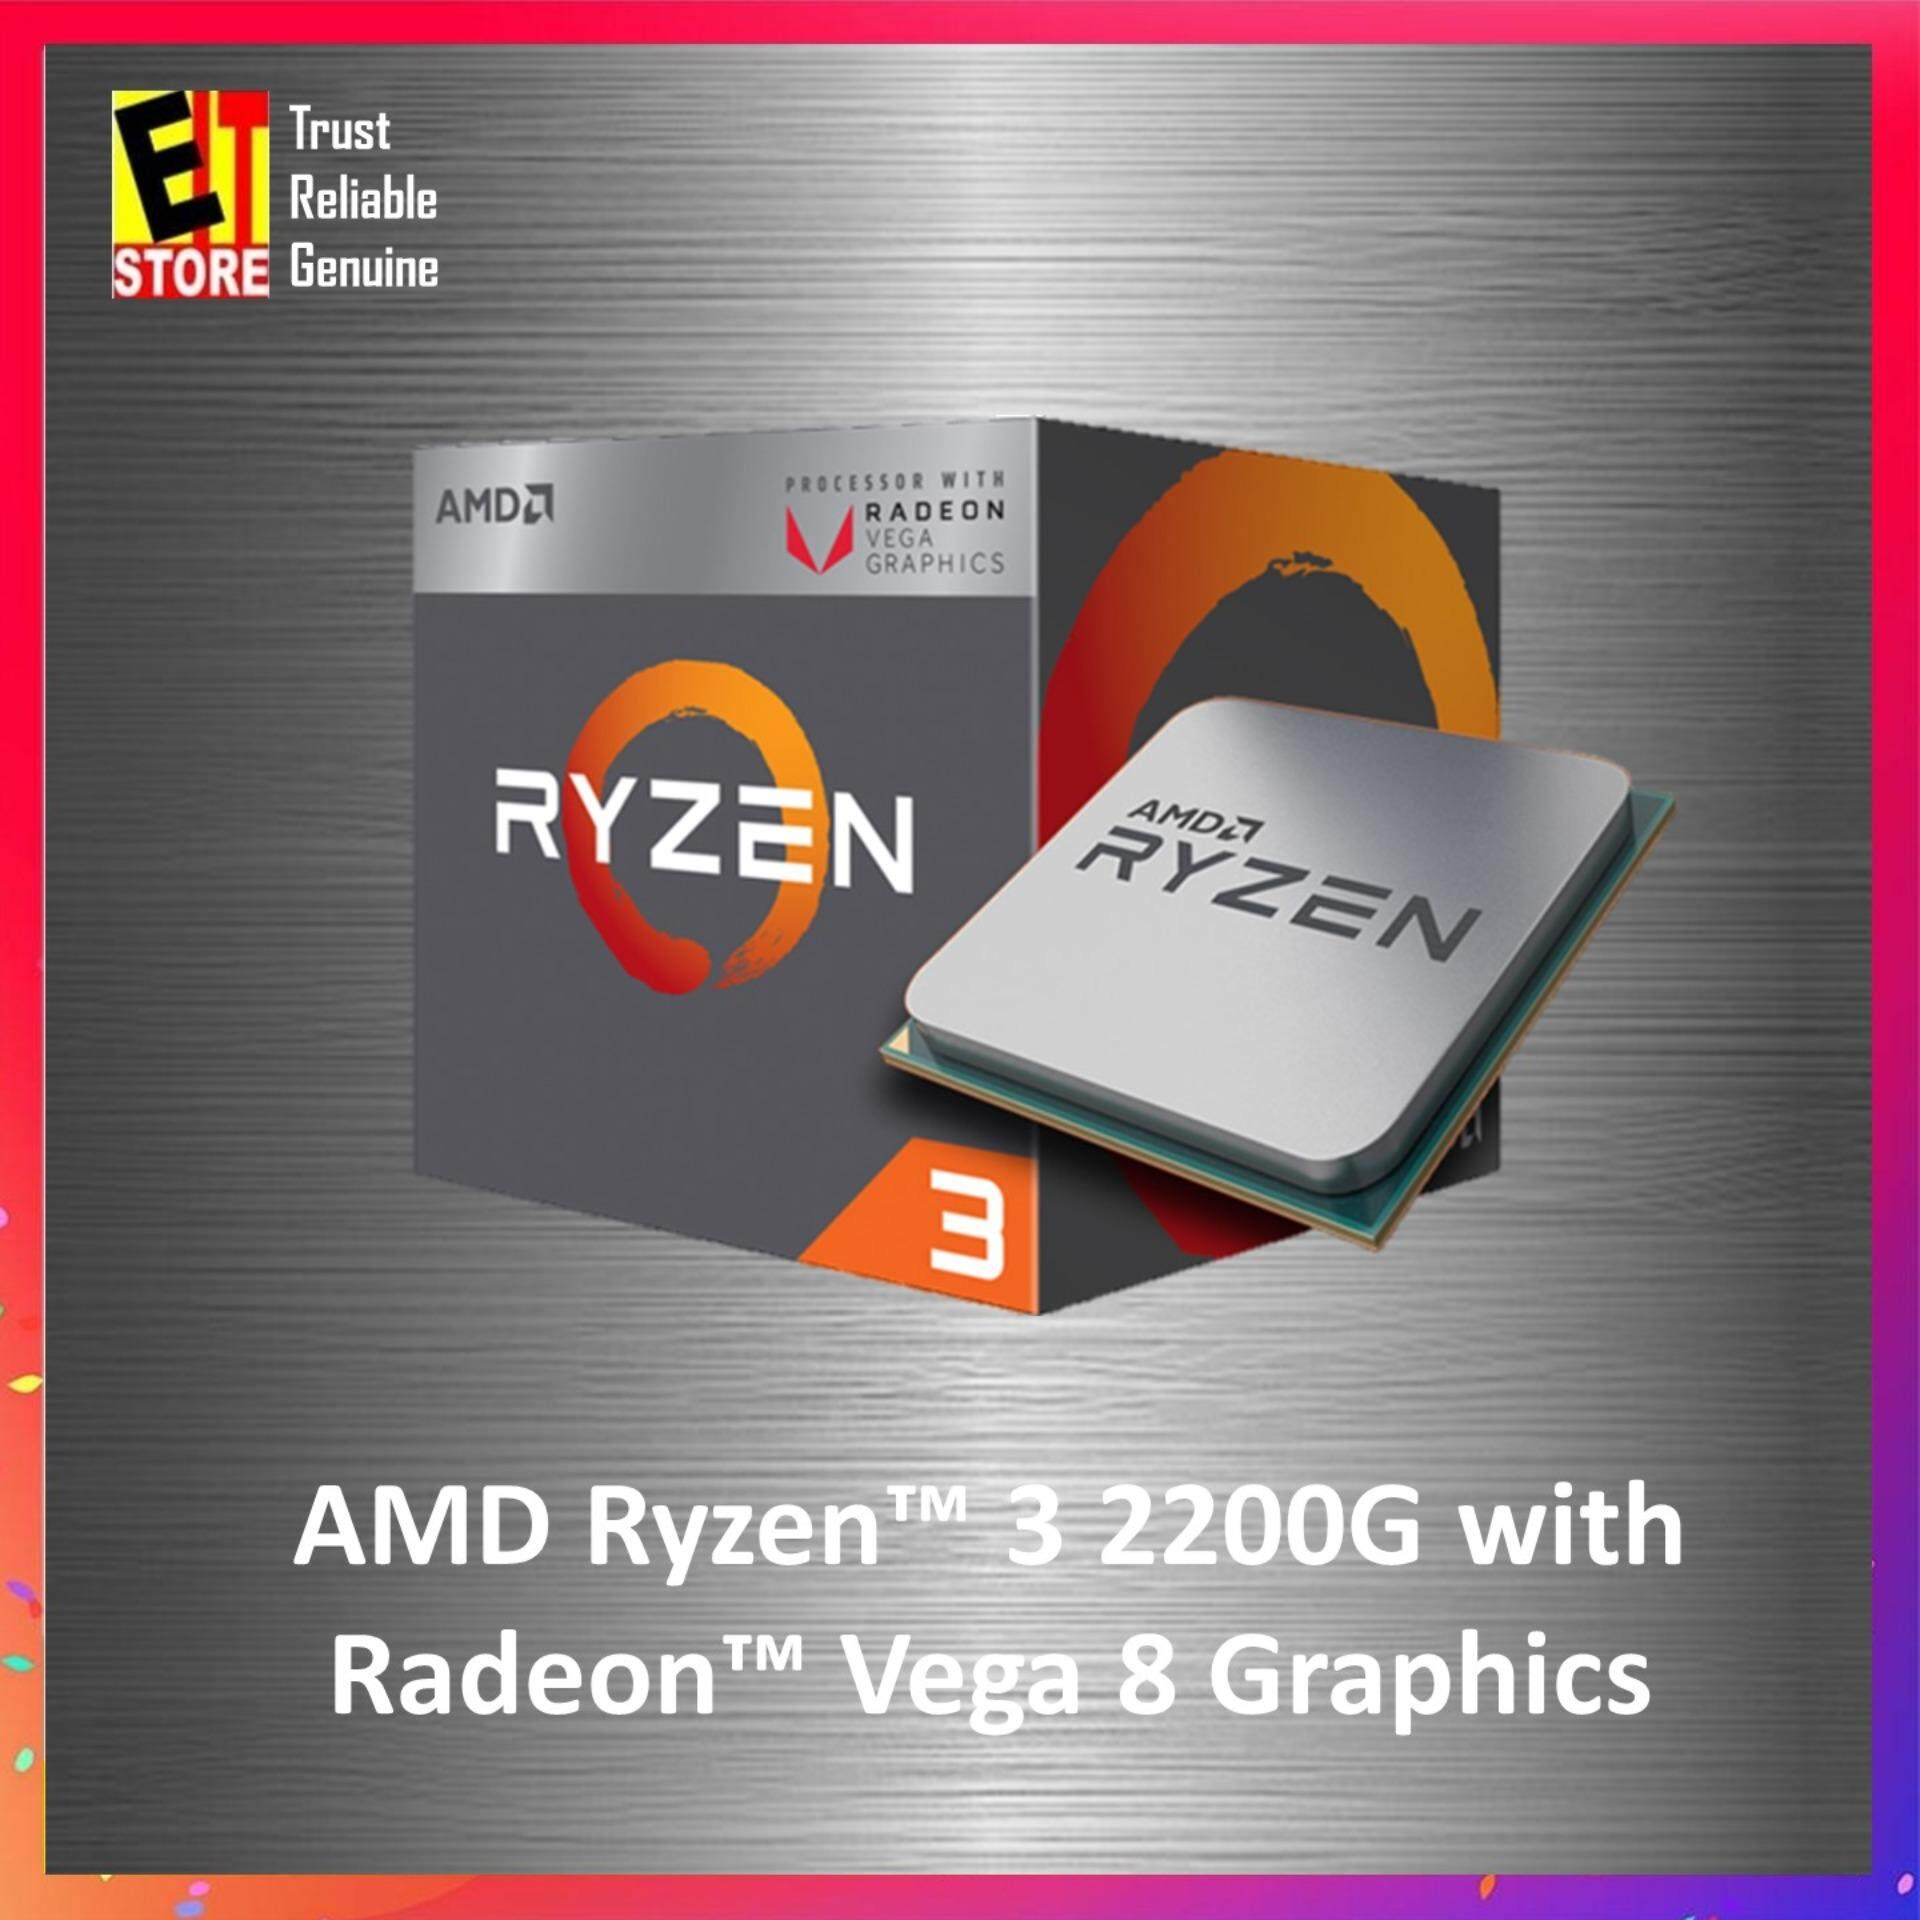 AMD RYZEN 3 2200G WITH RADEON VEGA GRAPHICS 4 CORE BASE BOX PROCESSOR